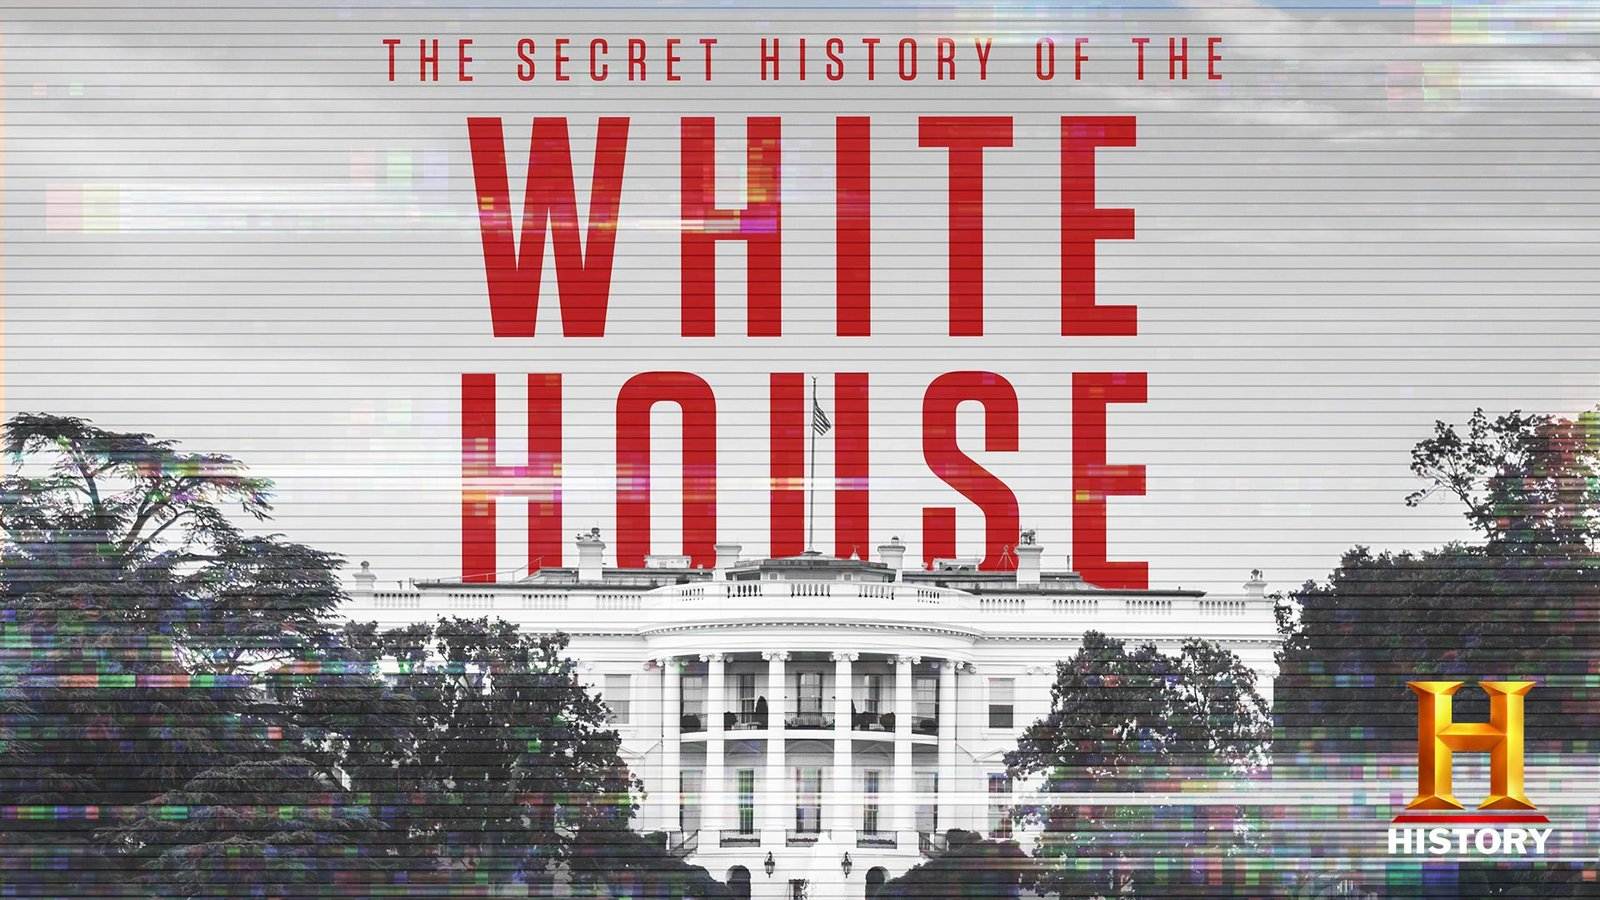 The Secret History of the White House